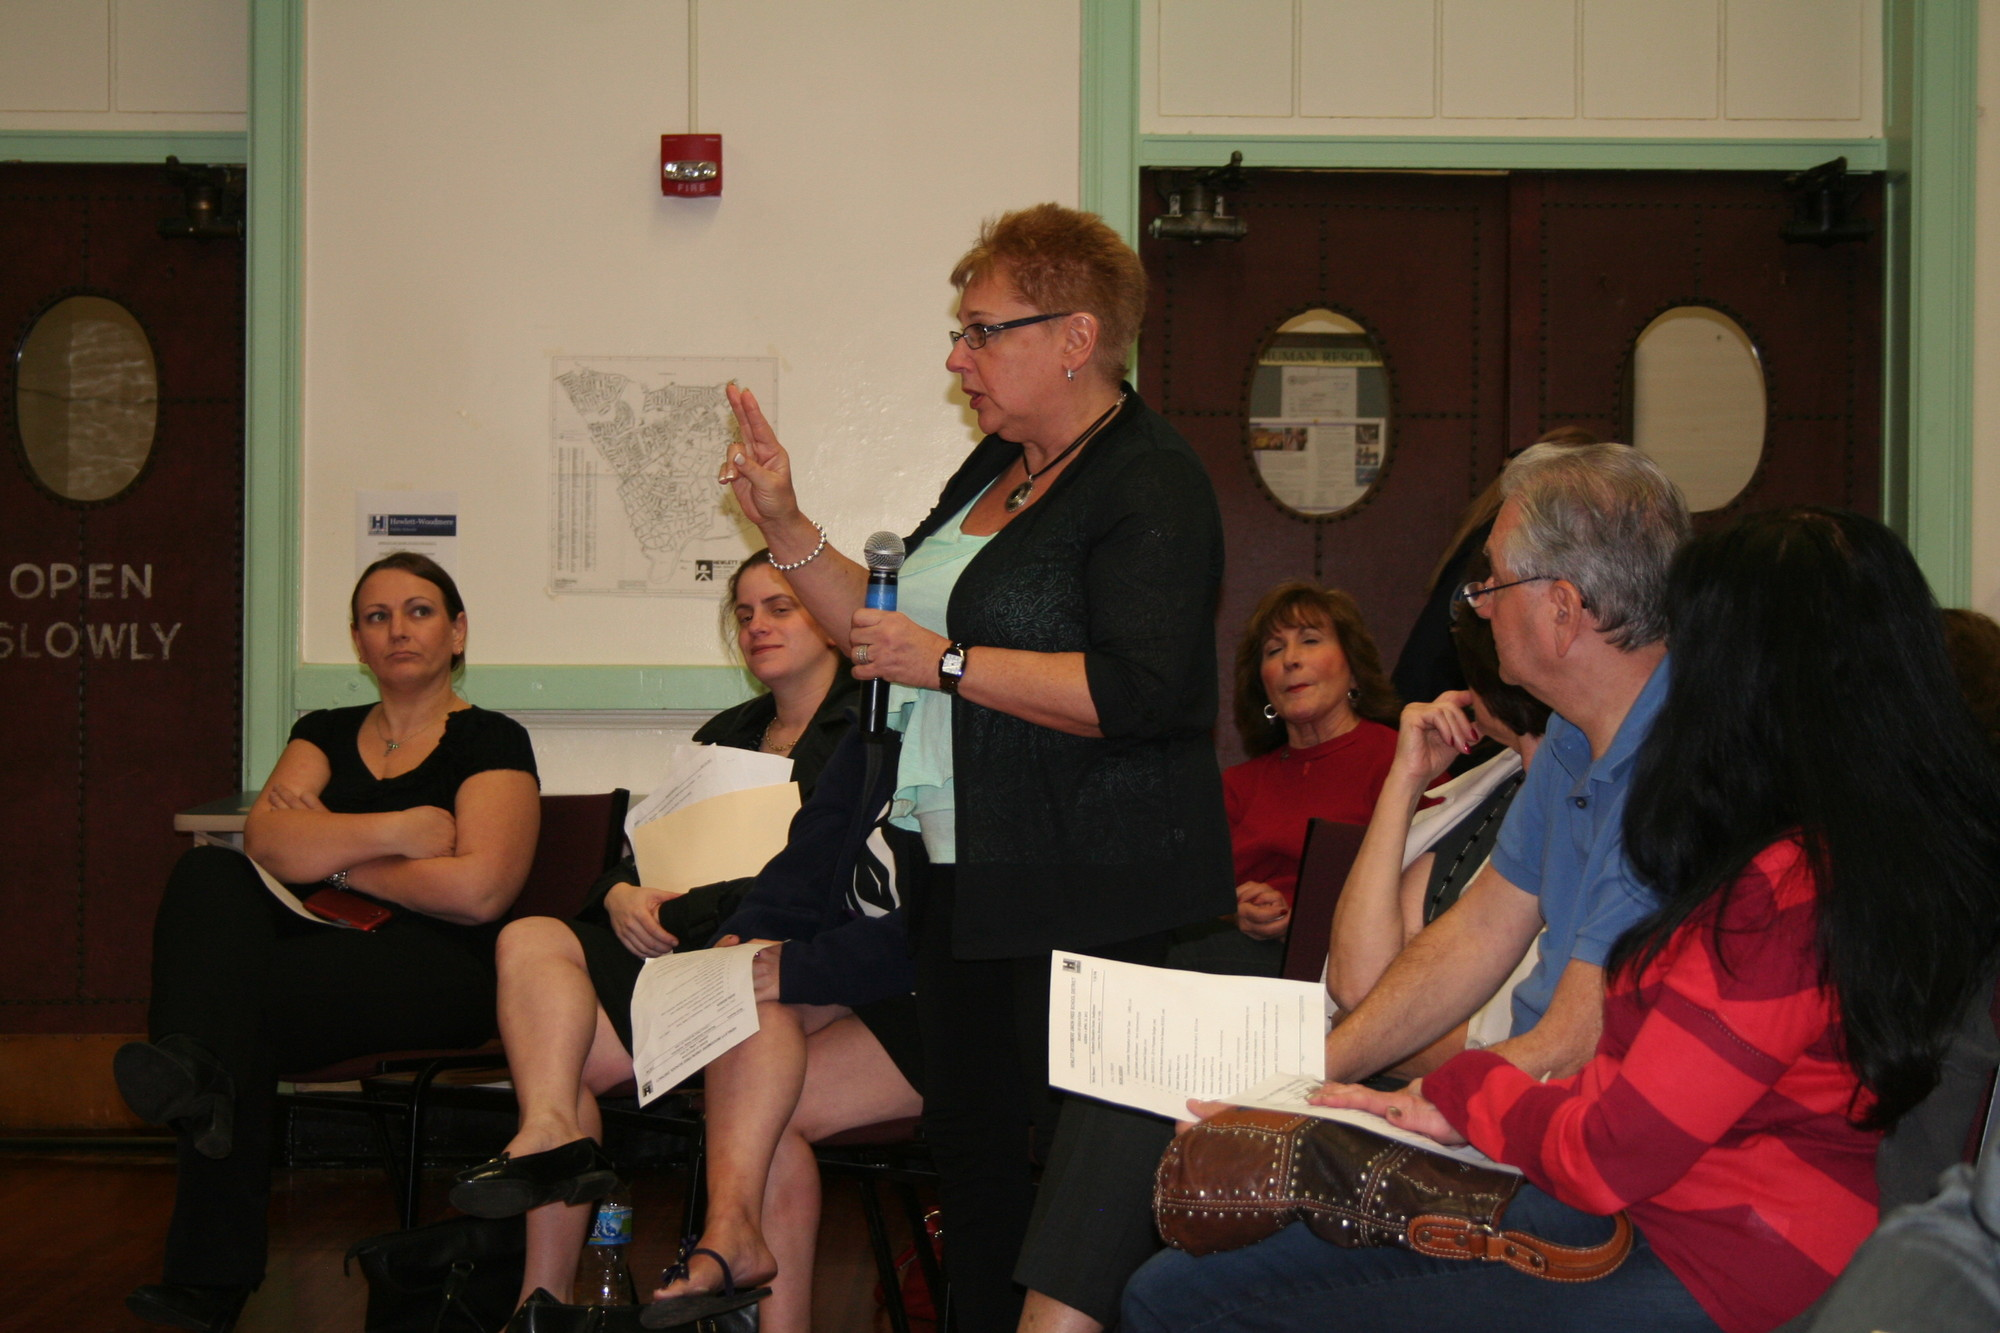 Hewlett resident Karen Schoenberger has been teaching Pilates as part of the Hewlett-Woodmere School District's Community Education for the past seven years. She expressed her anger at the district's initial decision to eliminate Community Education courses at the board's April 10 meeting.